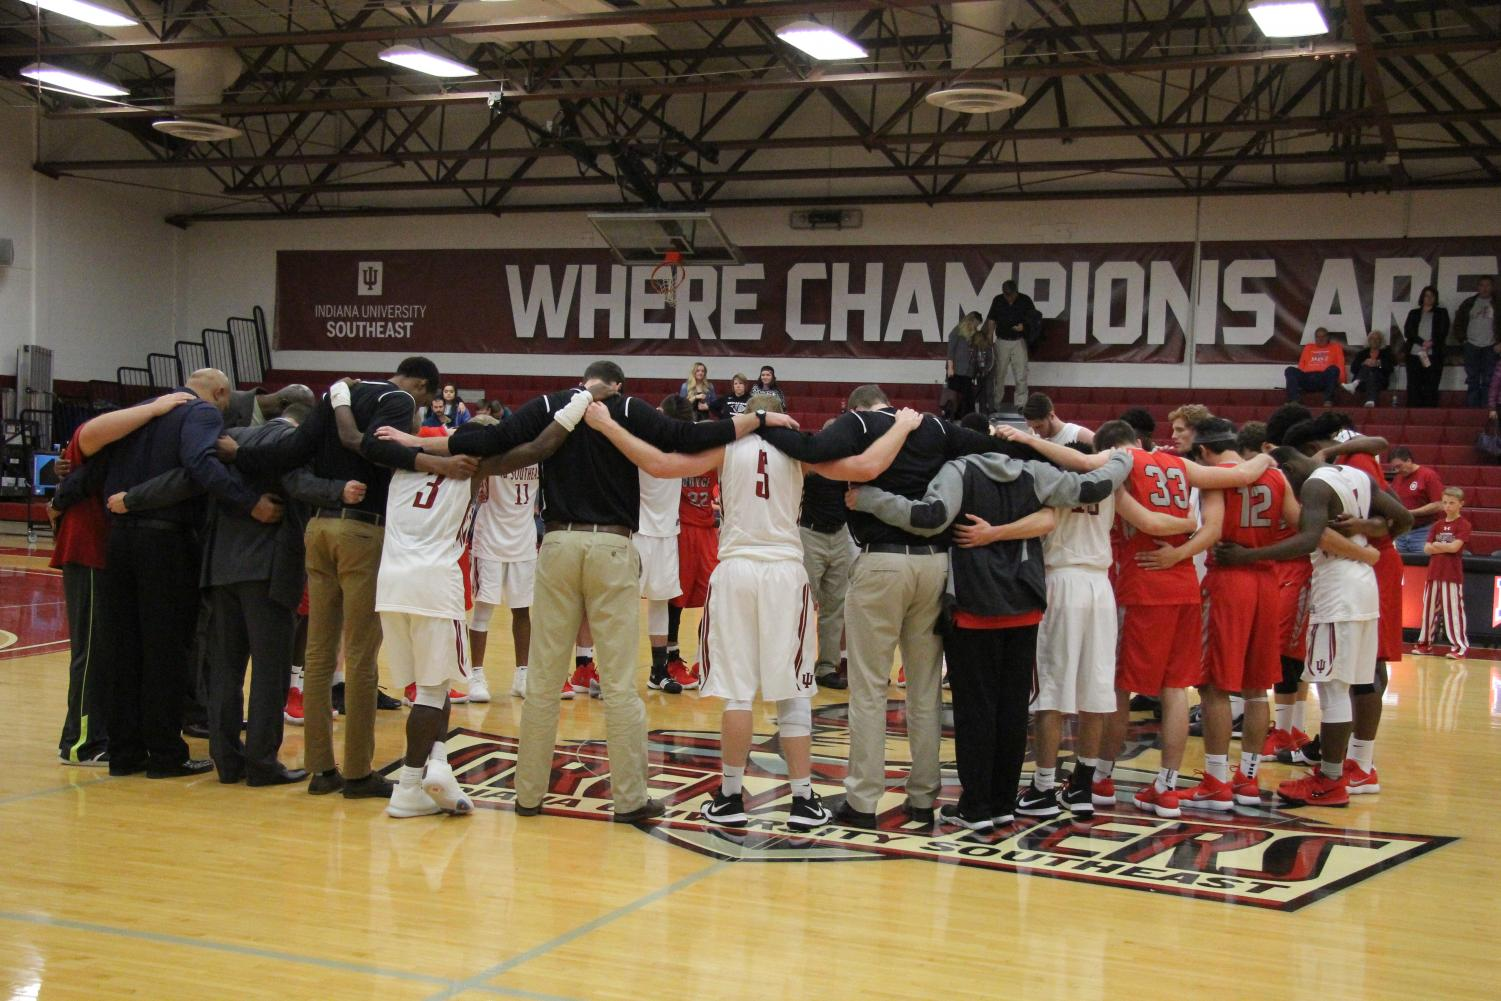 After+a+Grenadier+victory+against+Boyce+College%2C+both+men%E2%80%99s+basketball+teams+gathered+for+prayer.+Reed+Deoseu%2C+political+science+sophomore%2C+said+the+team+came+out+and+put+forth+the+effort+to+show+what+it+takes+to+win.